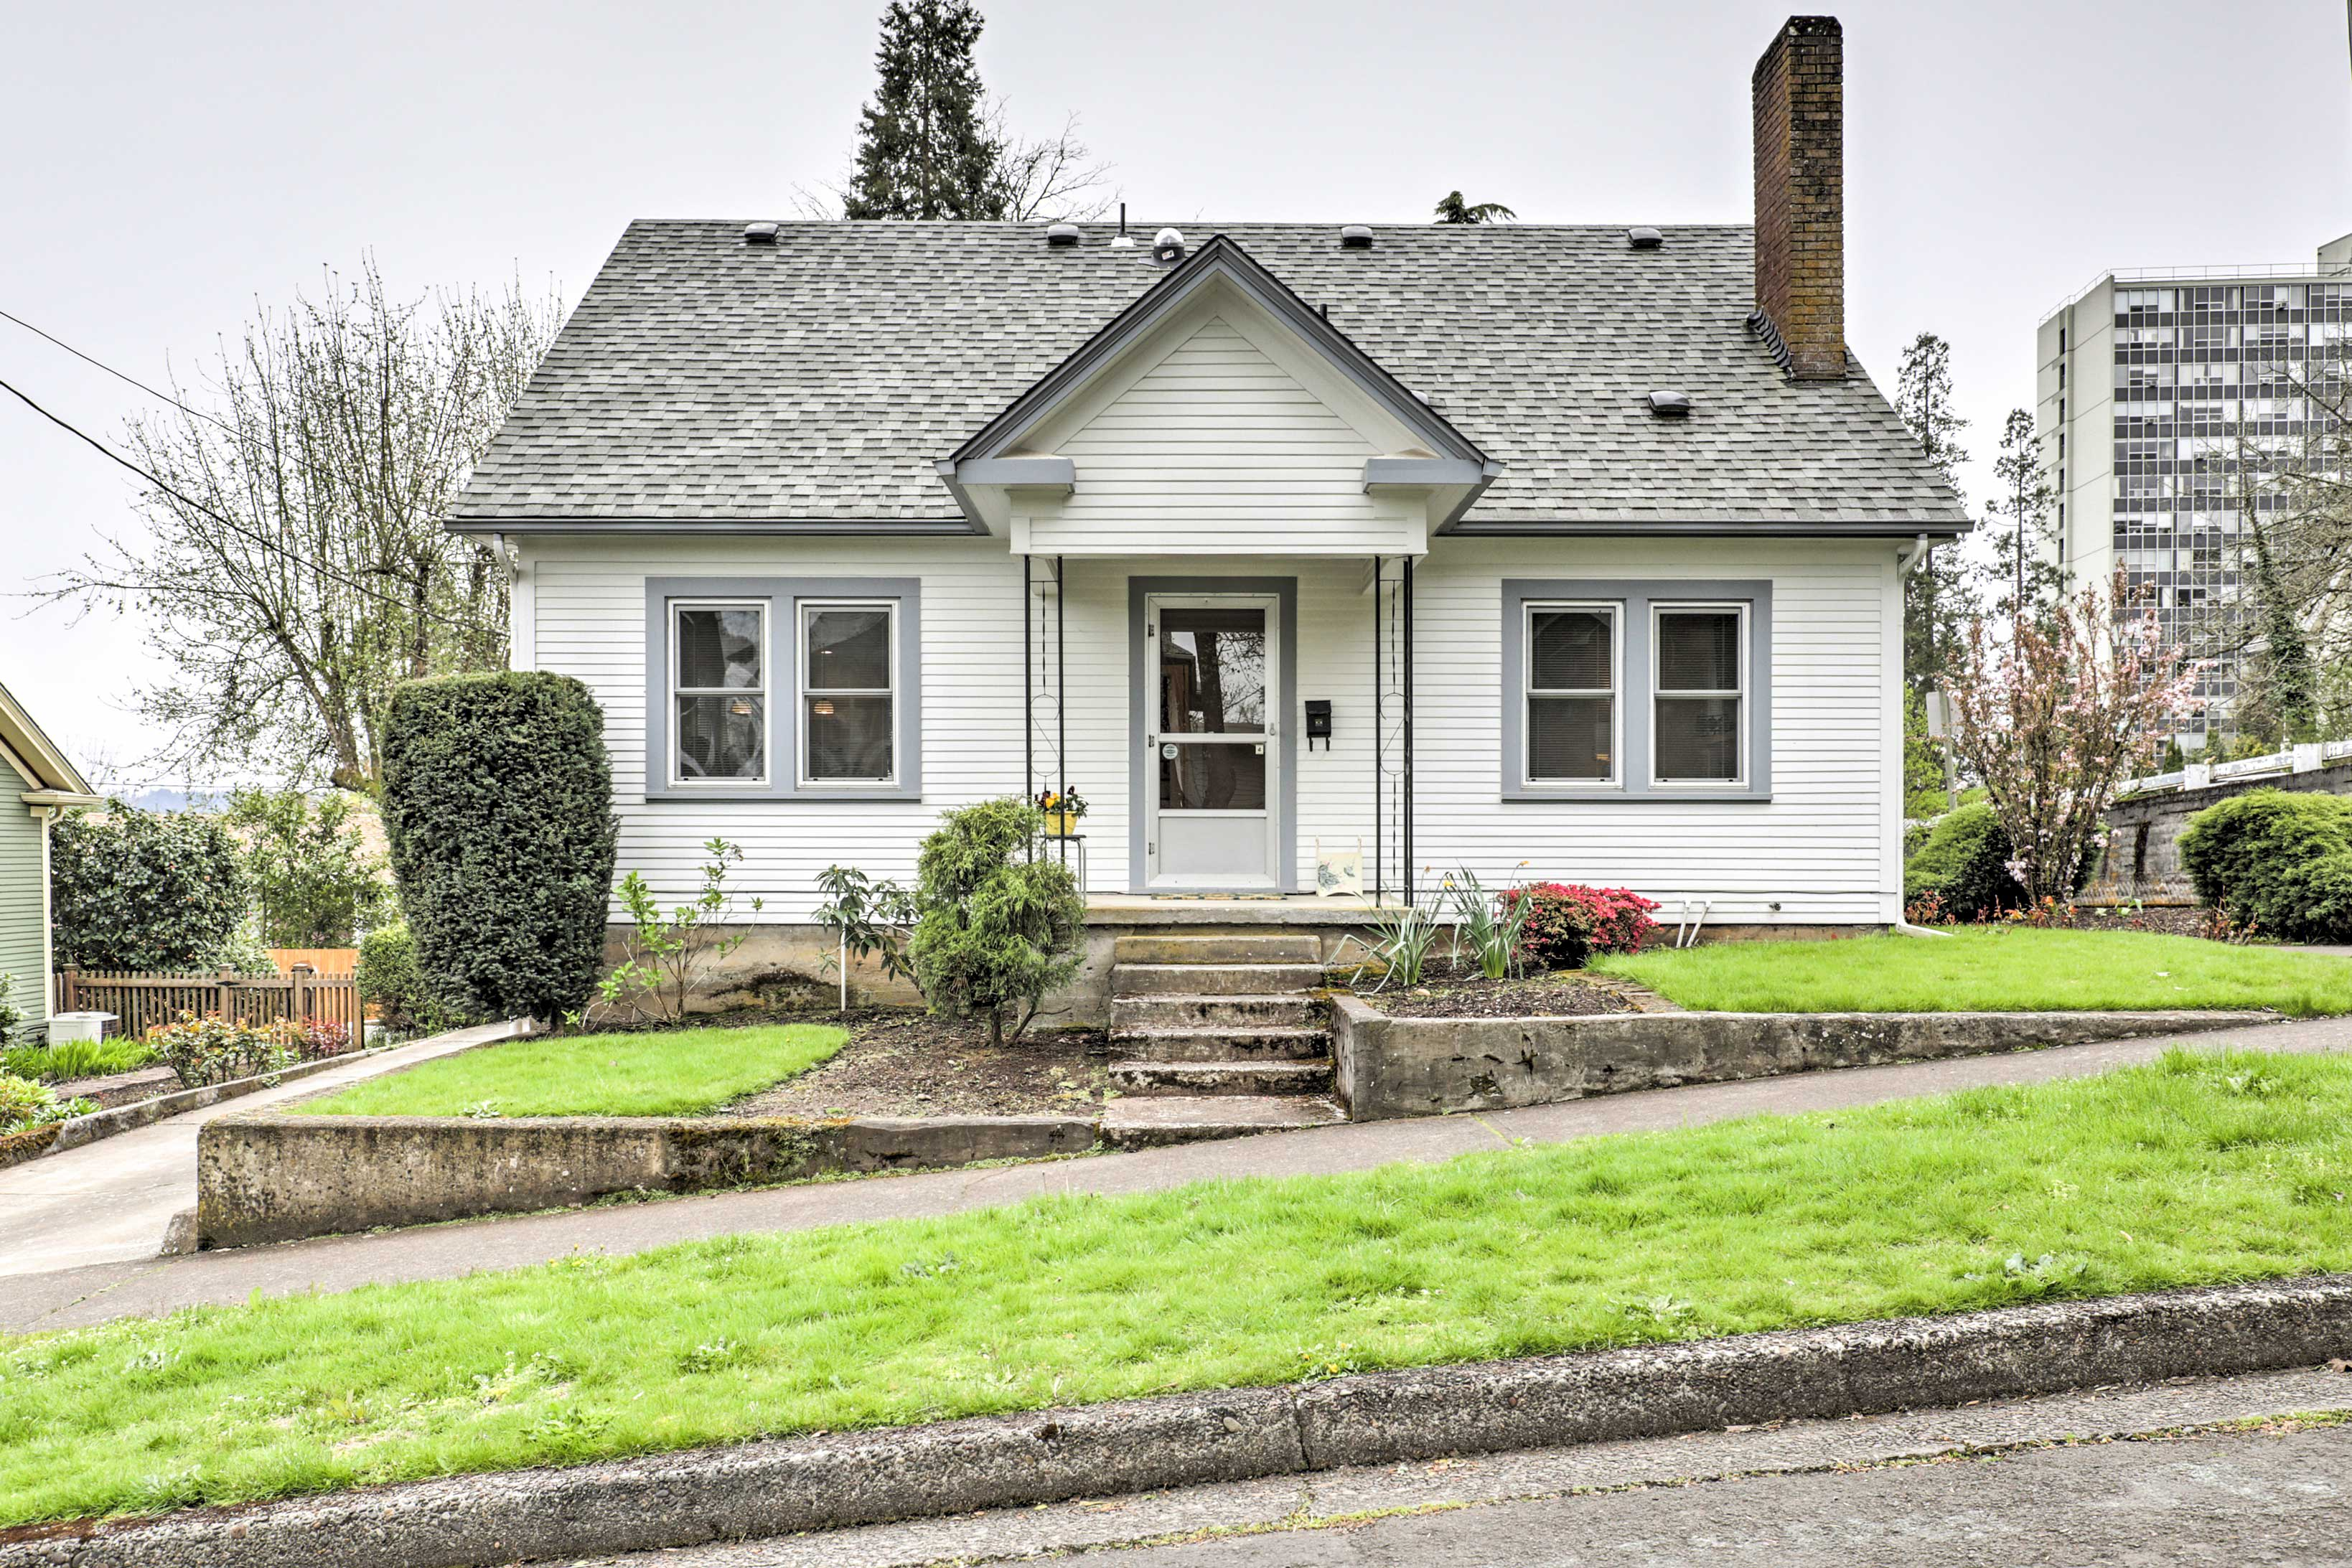 Relax at this 4-bedroom, 2-bathroom vacation rental house in Eugene, Oregon!